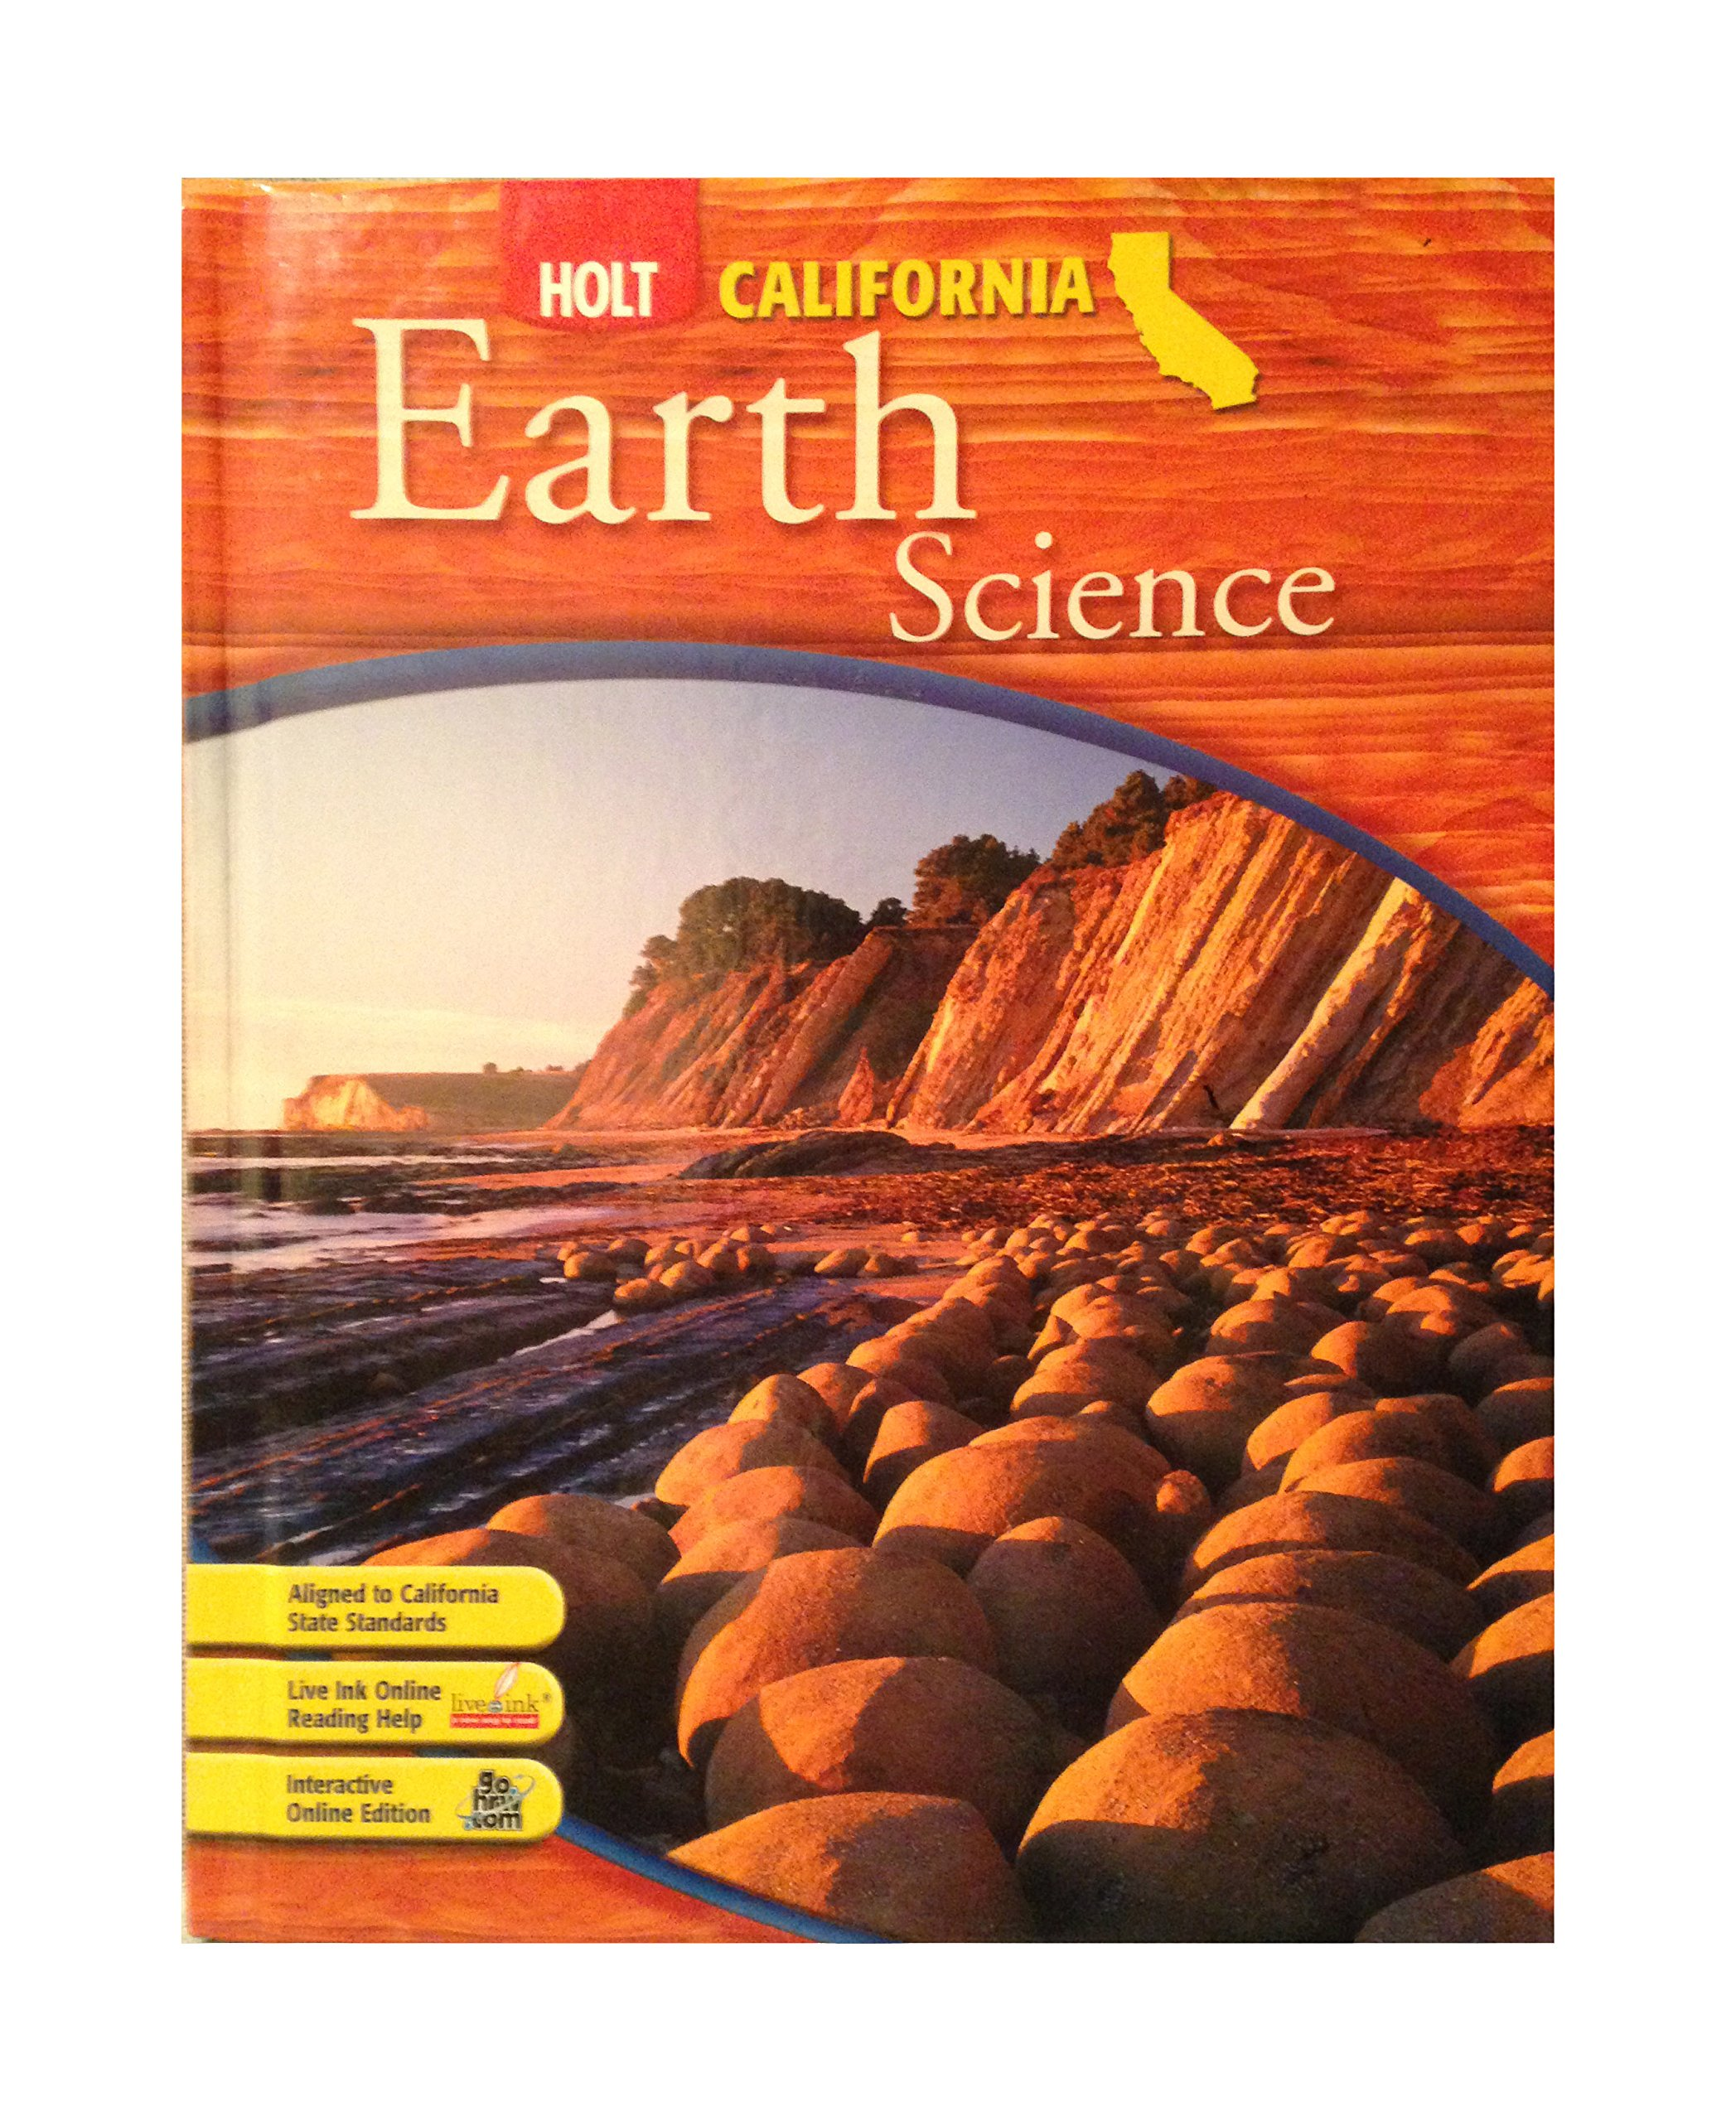 worksheet Holt Earth Science Worksheets holt science california student edition grade 6 earth 2007 rinehart and winston 9780030426582 amazon com books